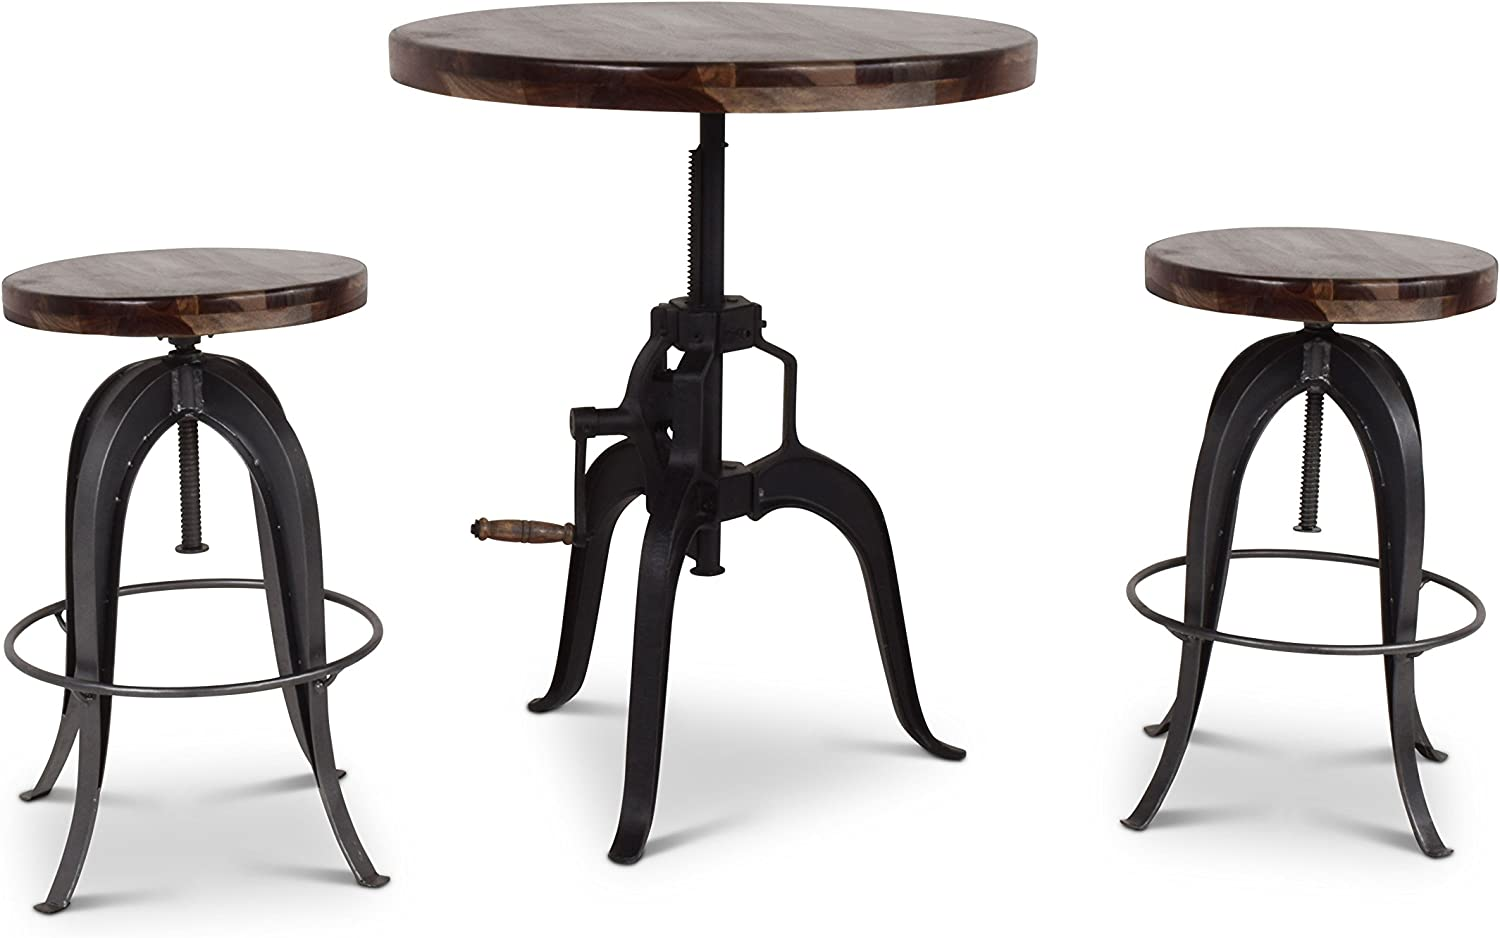 Steve Silver Sparrow 30 Round Adjustable Crank Pub Table in Russet